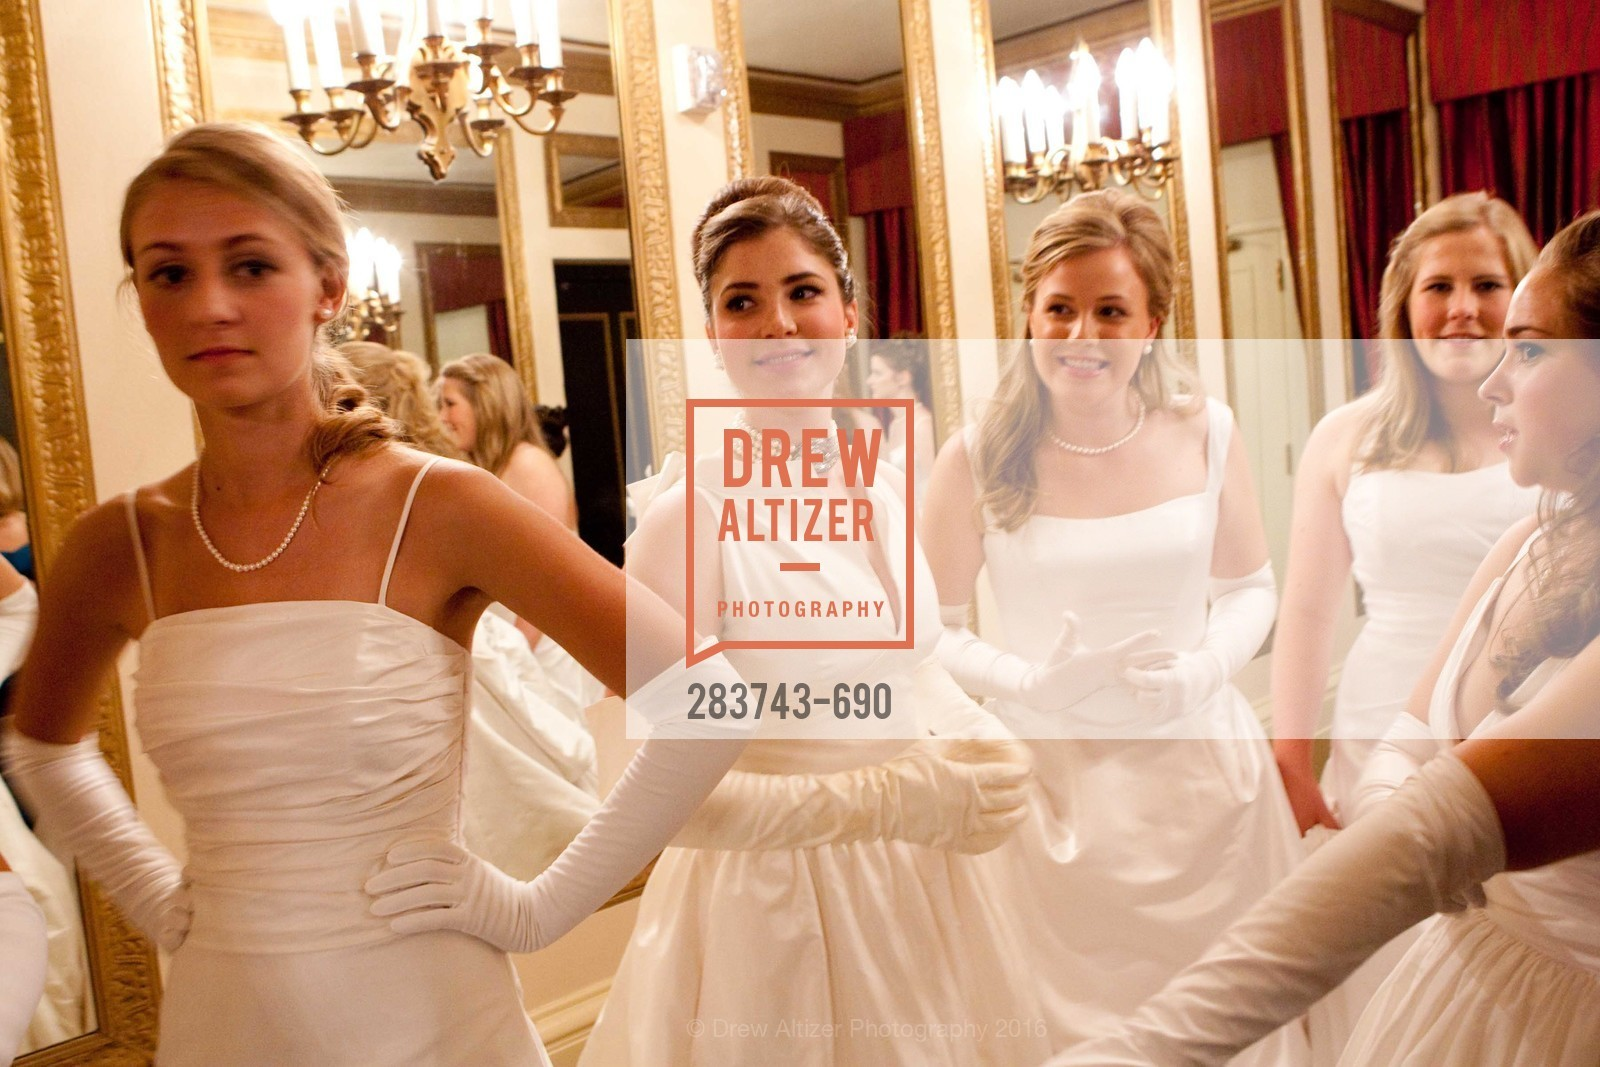 Abigail Mathieson, Denise Rollandi, Averell Edmondson, Taylor Roy, 2009 Debutante Ball, Unknown, July 4th, 2008,Drew Altizer, Drew Altizer Photography, full-service agency, private events, San Francisco photographer, photographer california